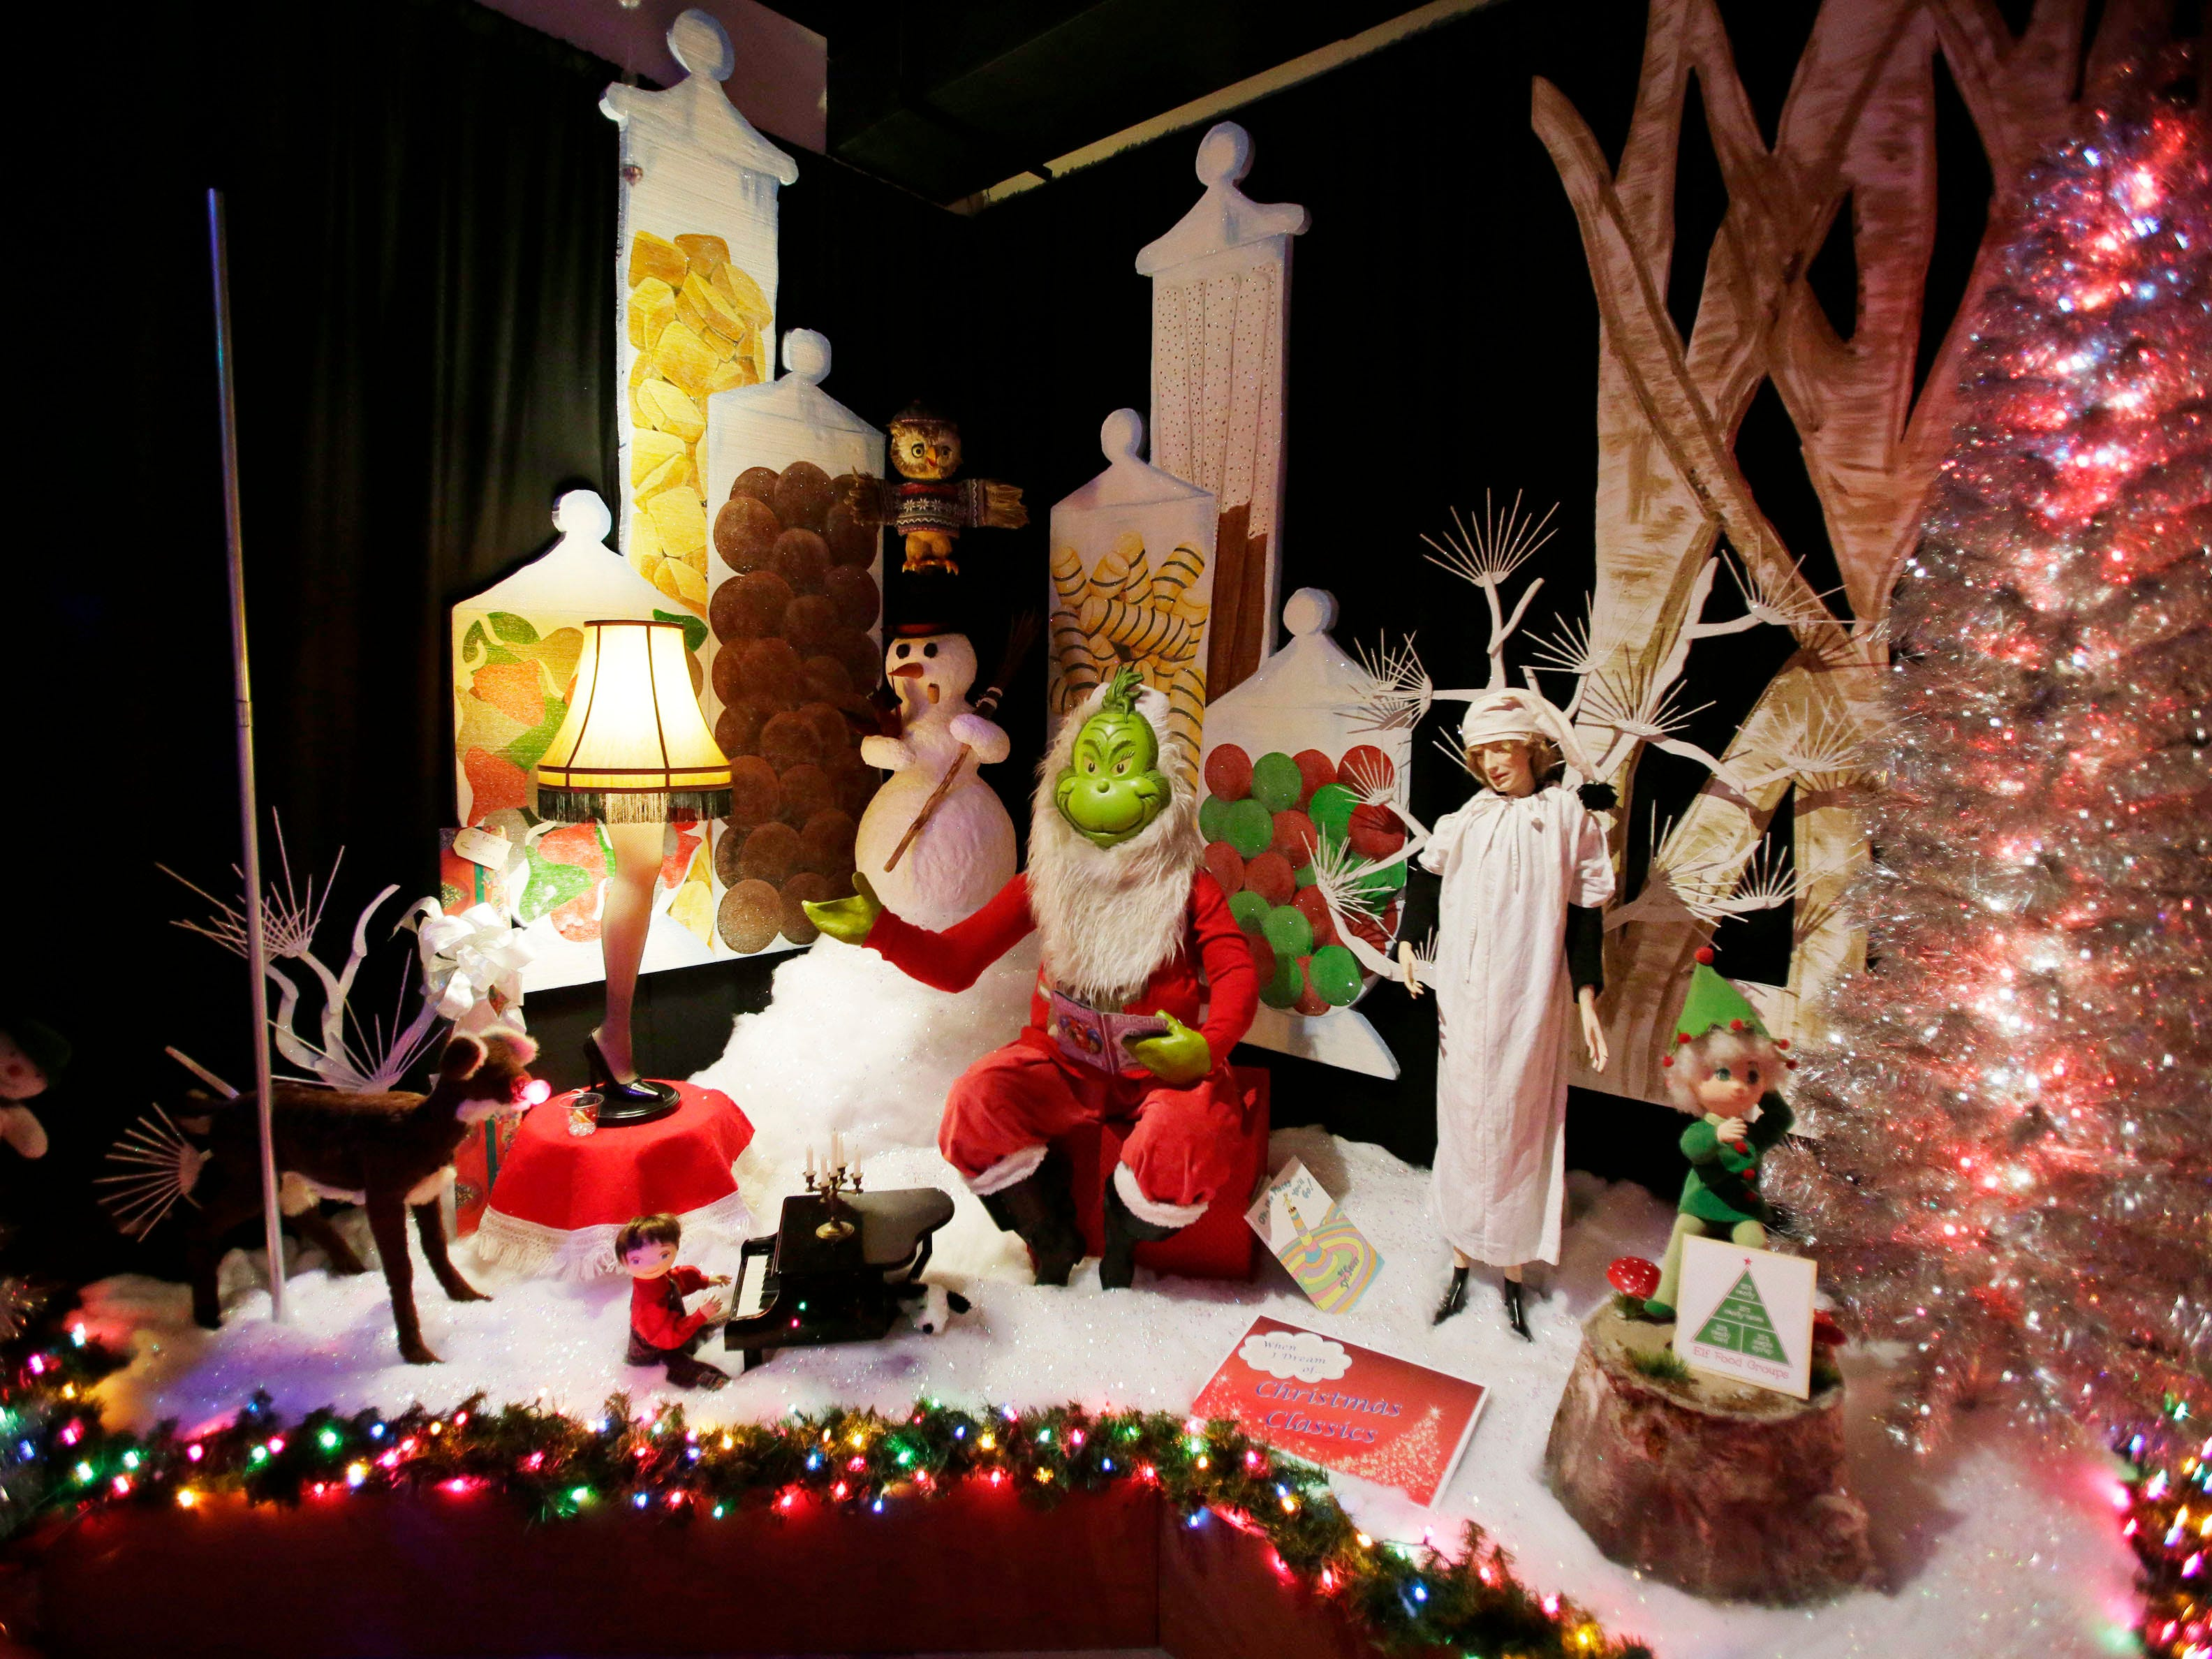 An eclectic holiday scene from the Sheboygan County Historical Museum's Holiday Memories, Friday, November 23, 2018, in Sheboygan, Wis.